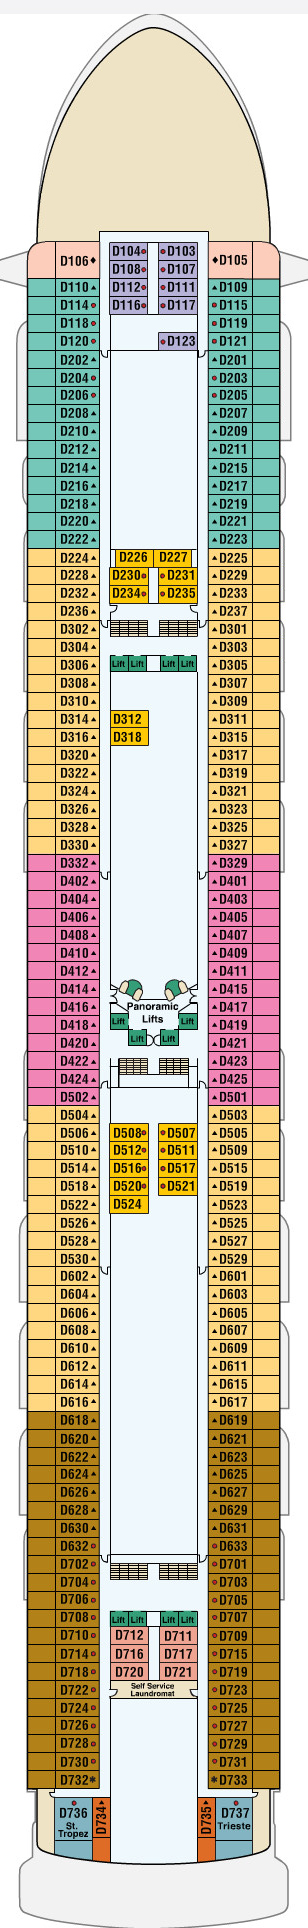 Golden Princess Dolphin Deck 9 layout